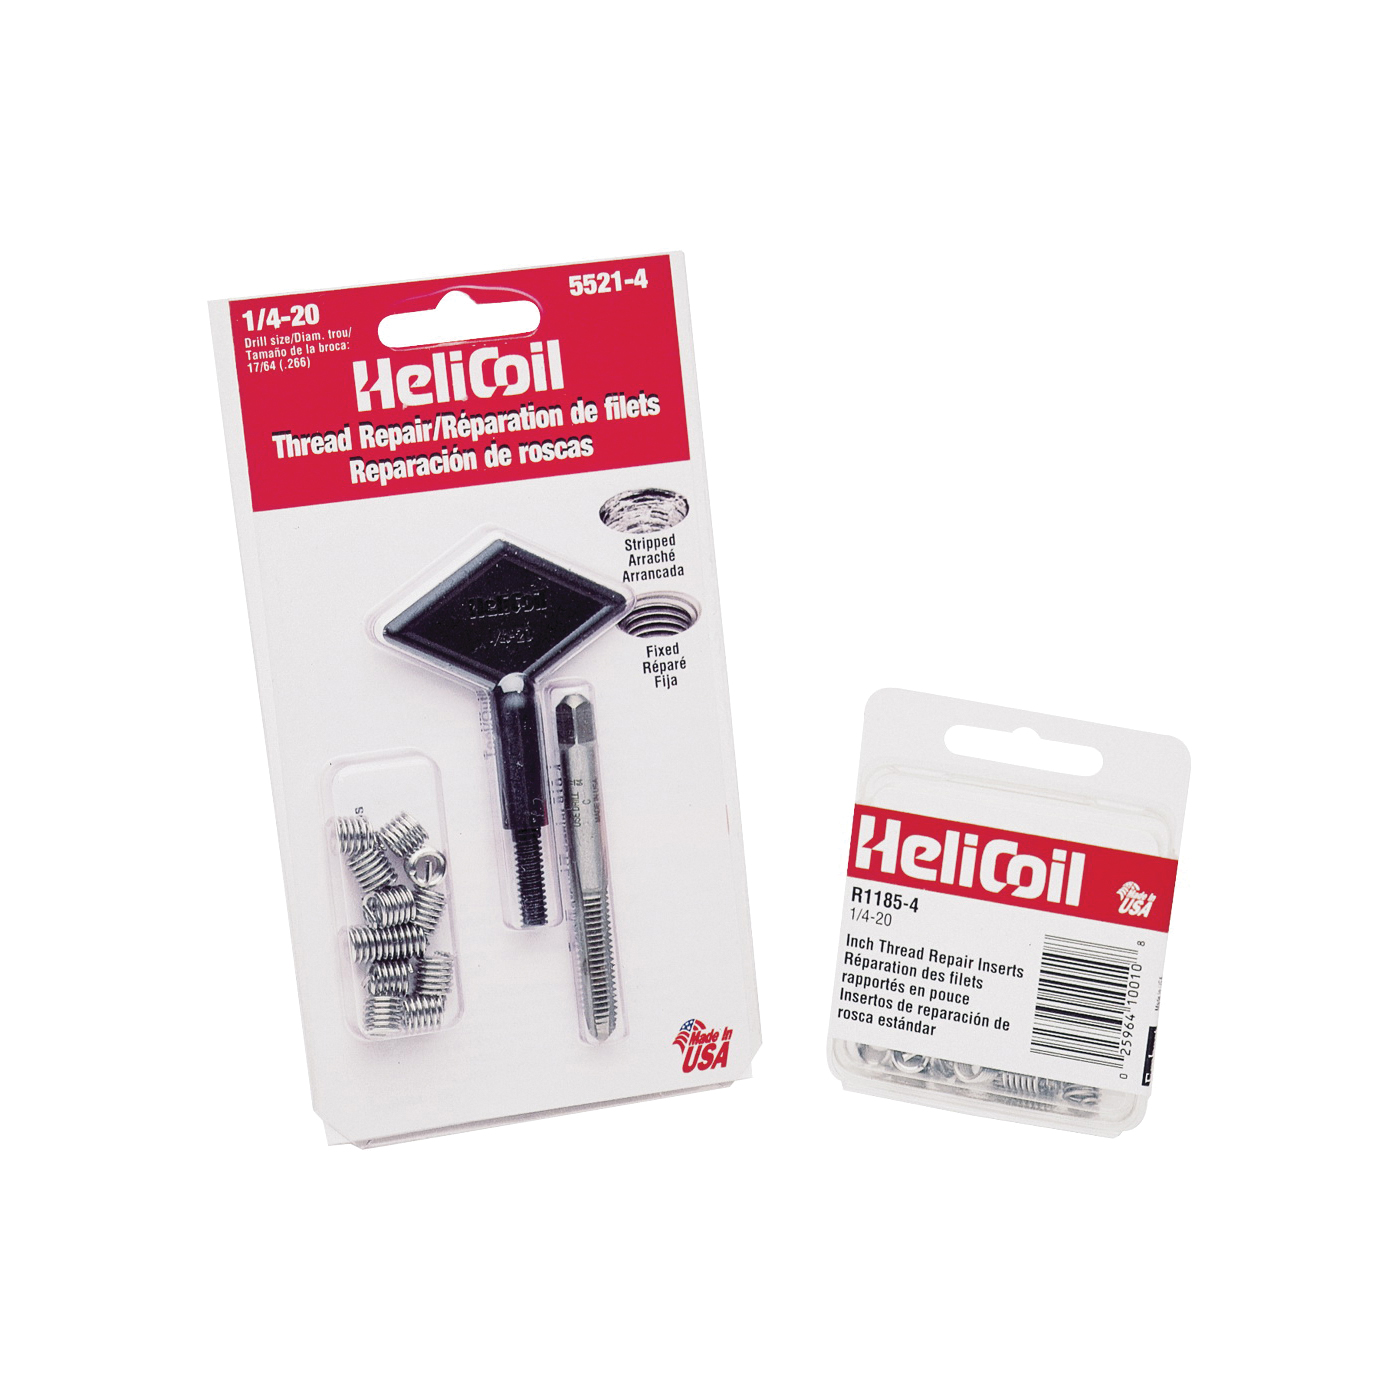 Picture of Heli-Coil 5521-4 Thread Repair Kit, 17/64 in, 3/8 in L, Stainless Steel